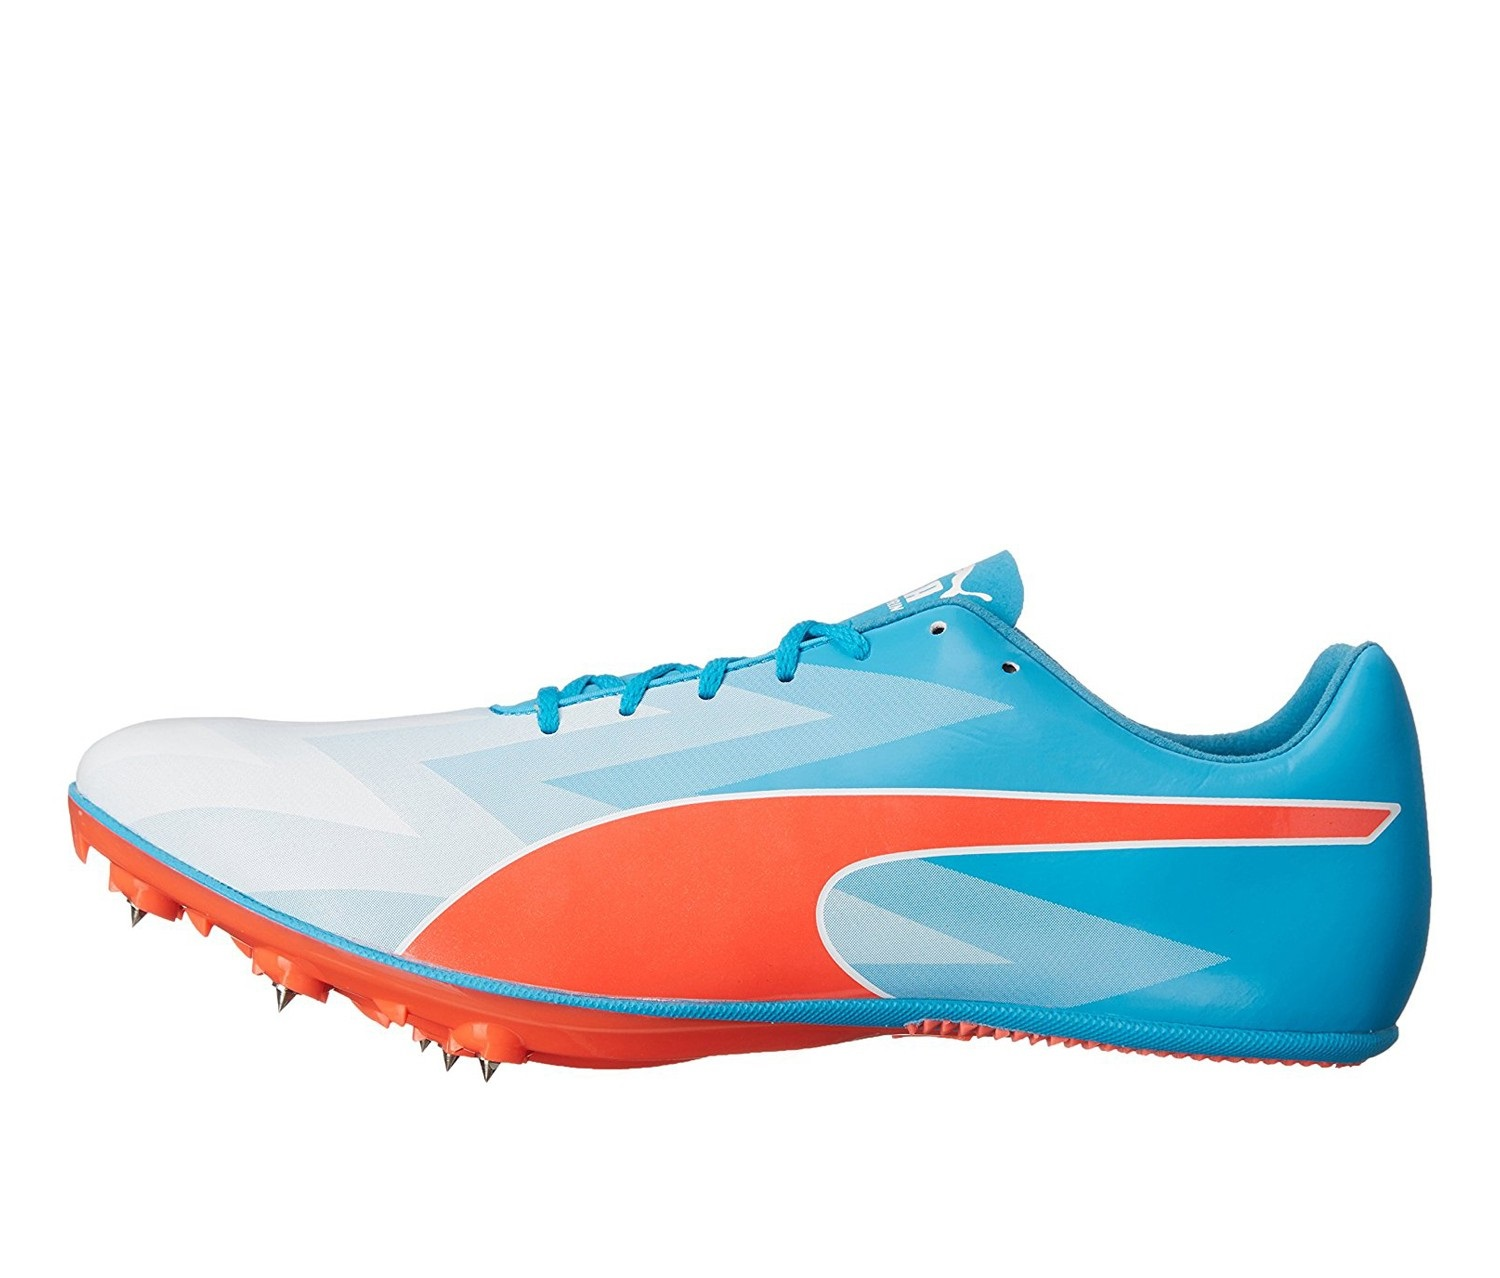 Shop Puma Puma Men s Evospeed Sprint V6 Sneaker e2b0c571e